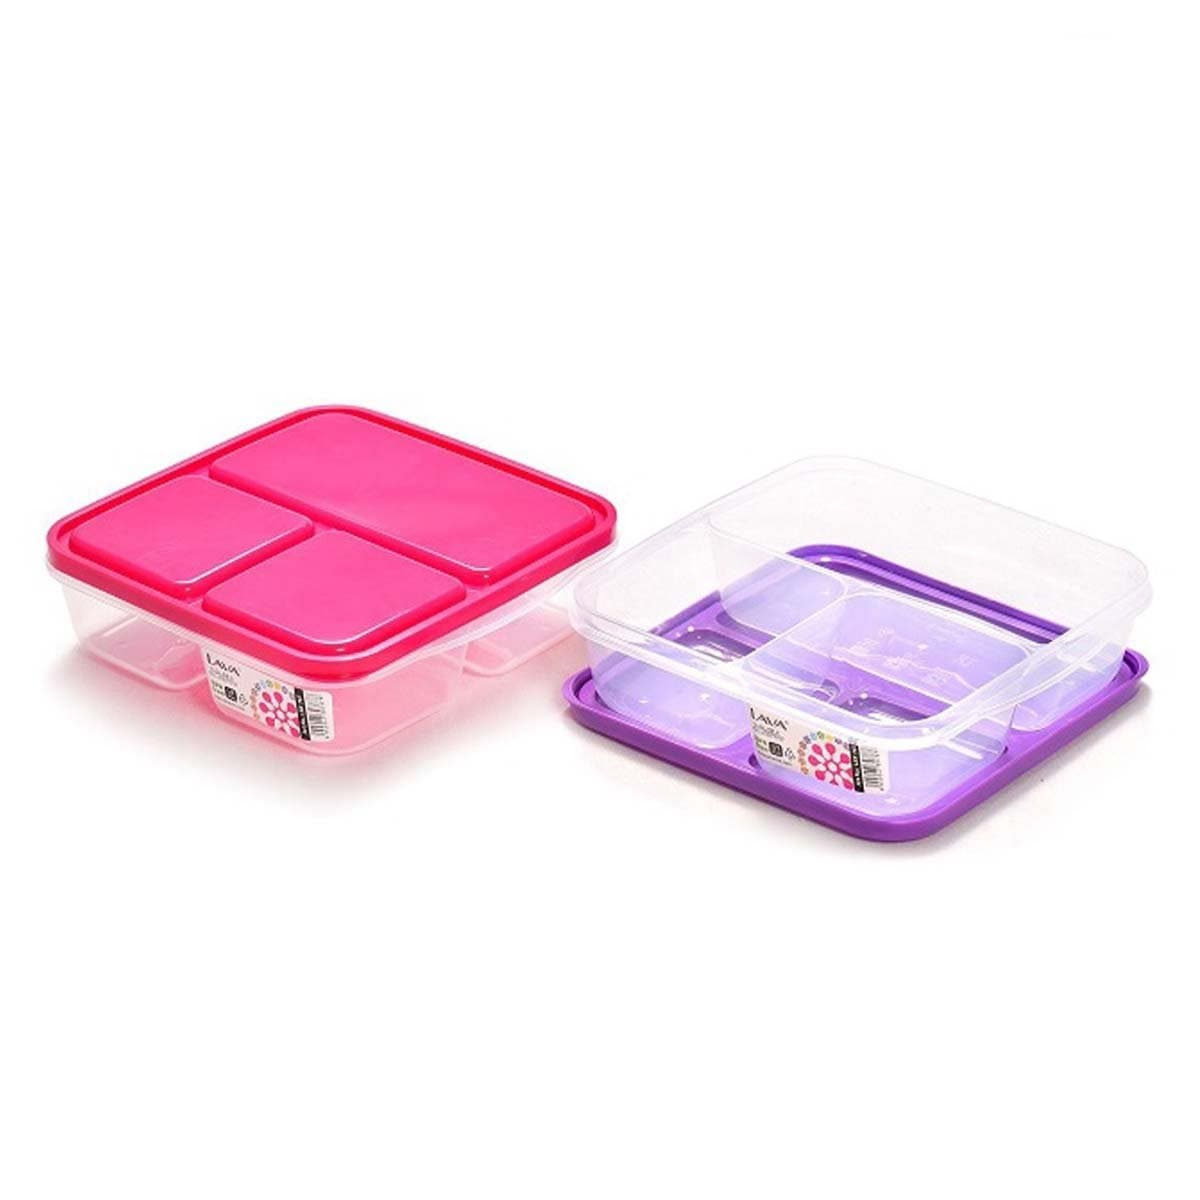 LBX787 LAVA Lunch Box (3 Tray) 1.1L